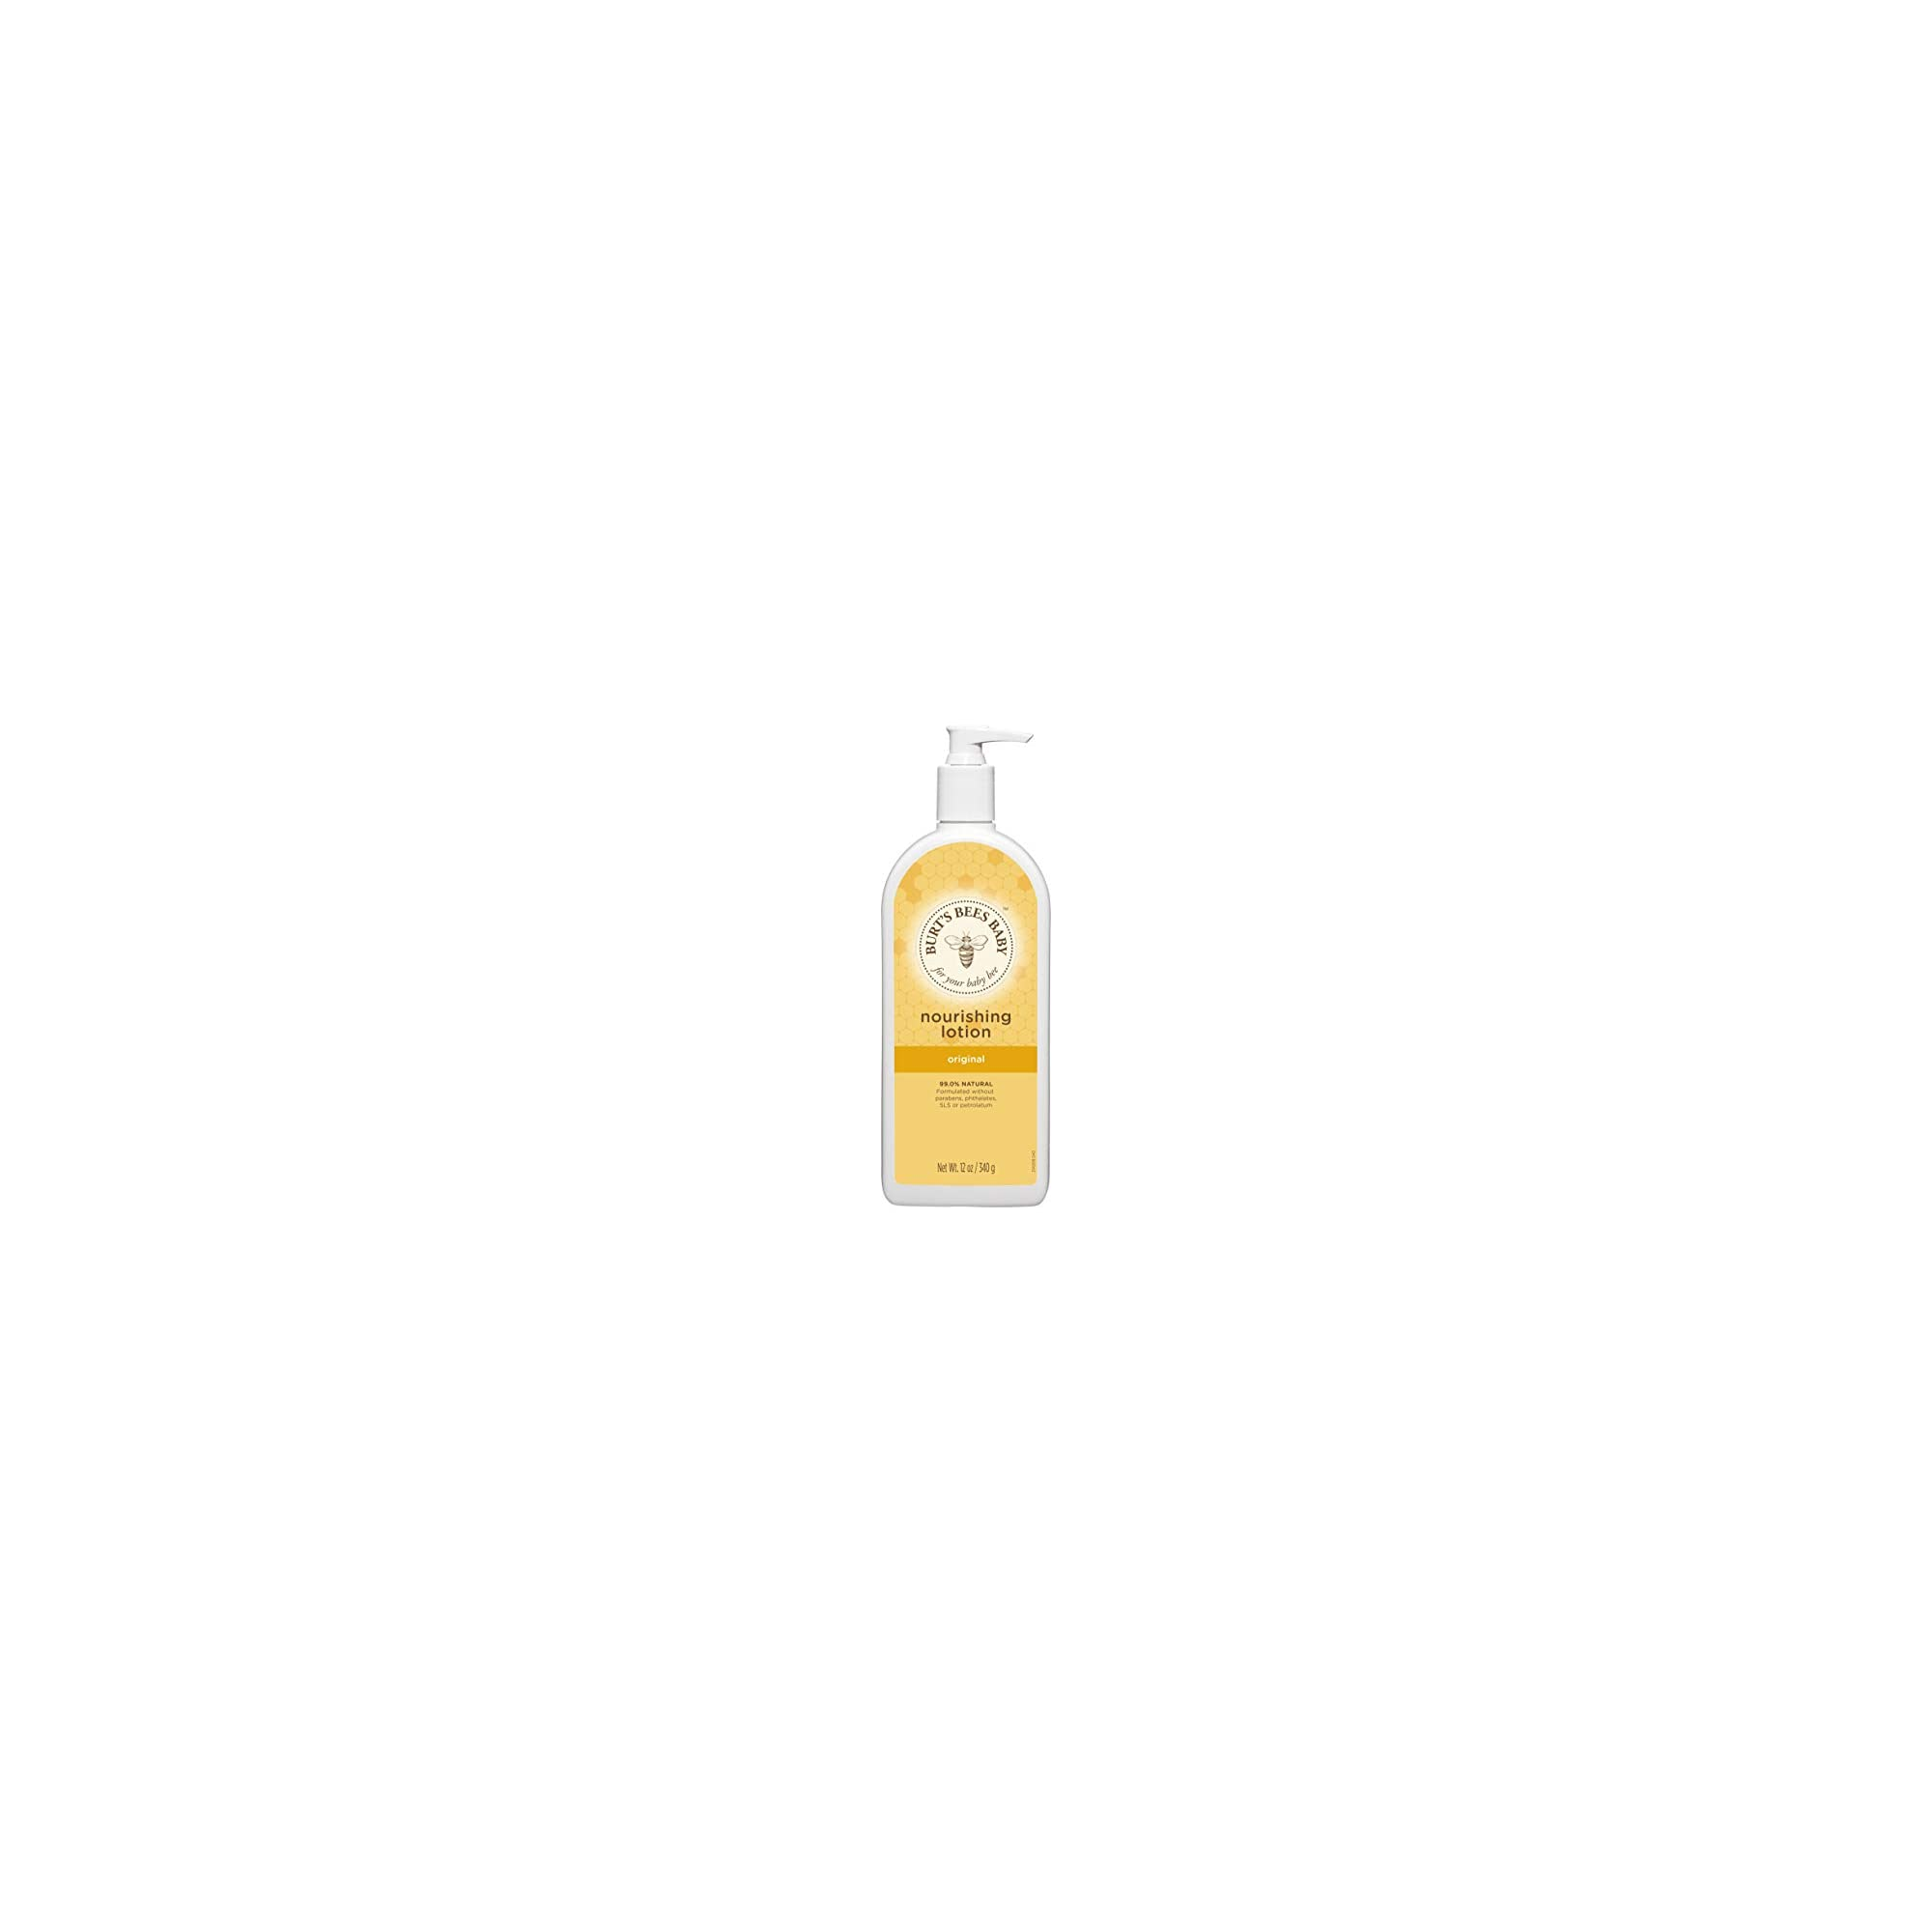 Burt's Bees Baby Nourishing Lotion,  Original Scent Baby Lotion – 12 Ounce Tube